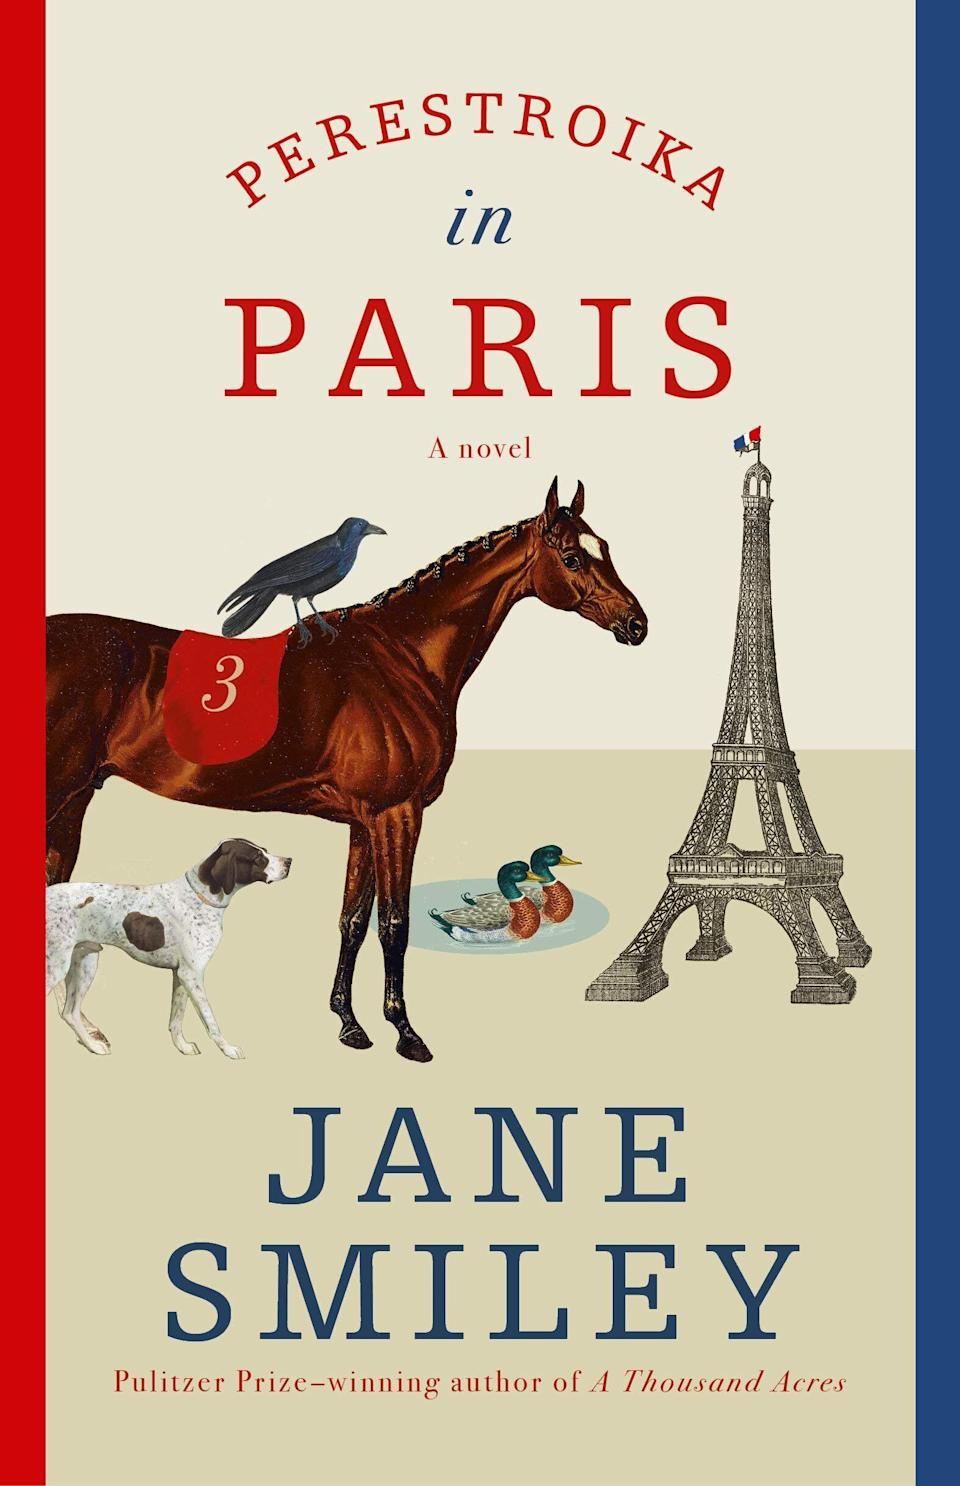 """Pulitzer Prize-winning and New York Times-bestselling author Jane Smiley's latest novel brings together an unlikely cast of characters in Paris: A spirited racehorse, a German shorthaired pointer, and a young boy. The trio's friendship blooms as they explore Paris while trying not to raise too many eyebrows. Knopf calls this whimsical tale """"an adventure that celebrates curiosity, ingenuity, and the desire of all creatures for true love and freedom."""" Read more about it on <a href=""""https://www.goodreads.com/book/show/52578294-perestroika-in-paris"""">Goodreads</a>, and grab a copy on <a href=""""https://amzn.to/2JCNIxV"""">Amazon</a> or <a href=""""https://fave.co/3lpsDUZ"""">Bookshop</a>.<br /><br /><i>Expected release date:</i> <i>December 1</i>"""